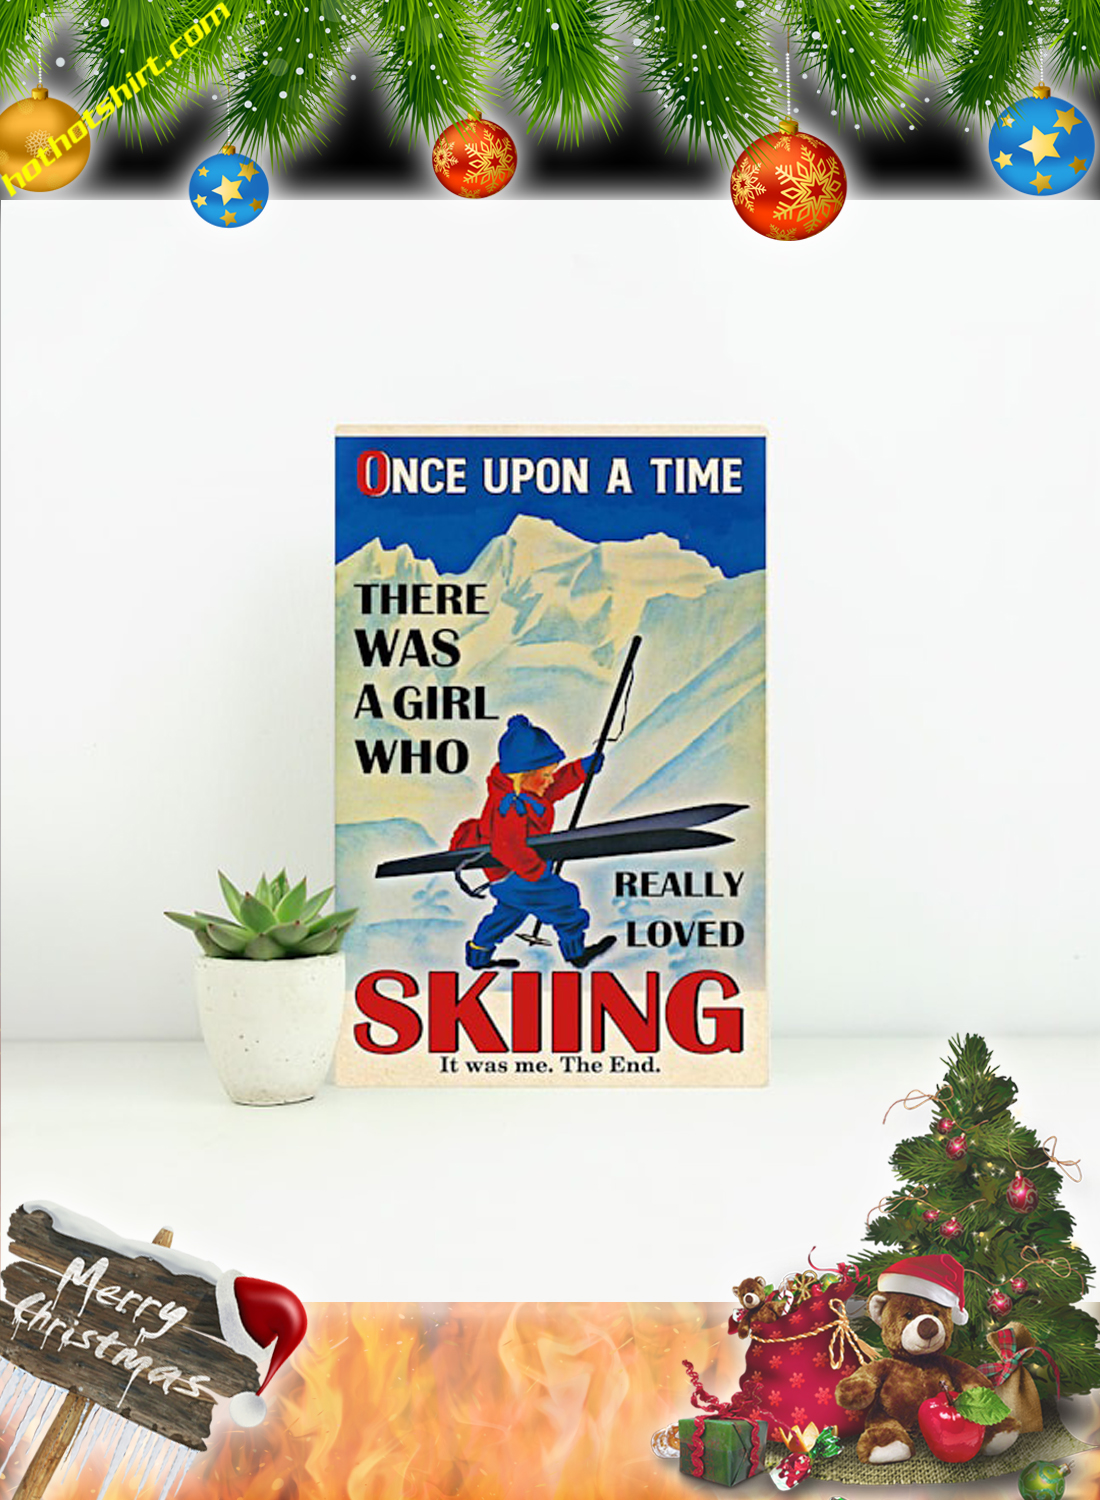 Once upon a time there was a girl who really loved skiing it was me the end canvas print and poster 1